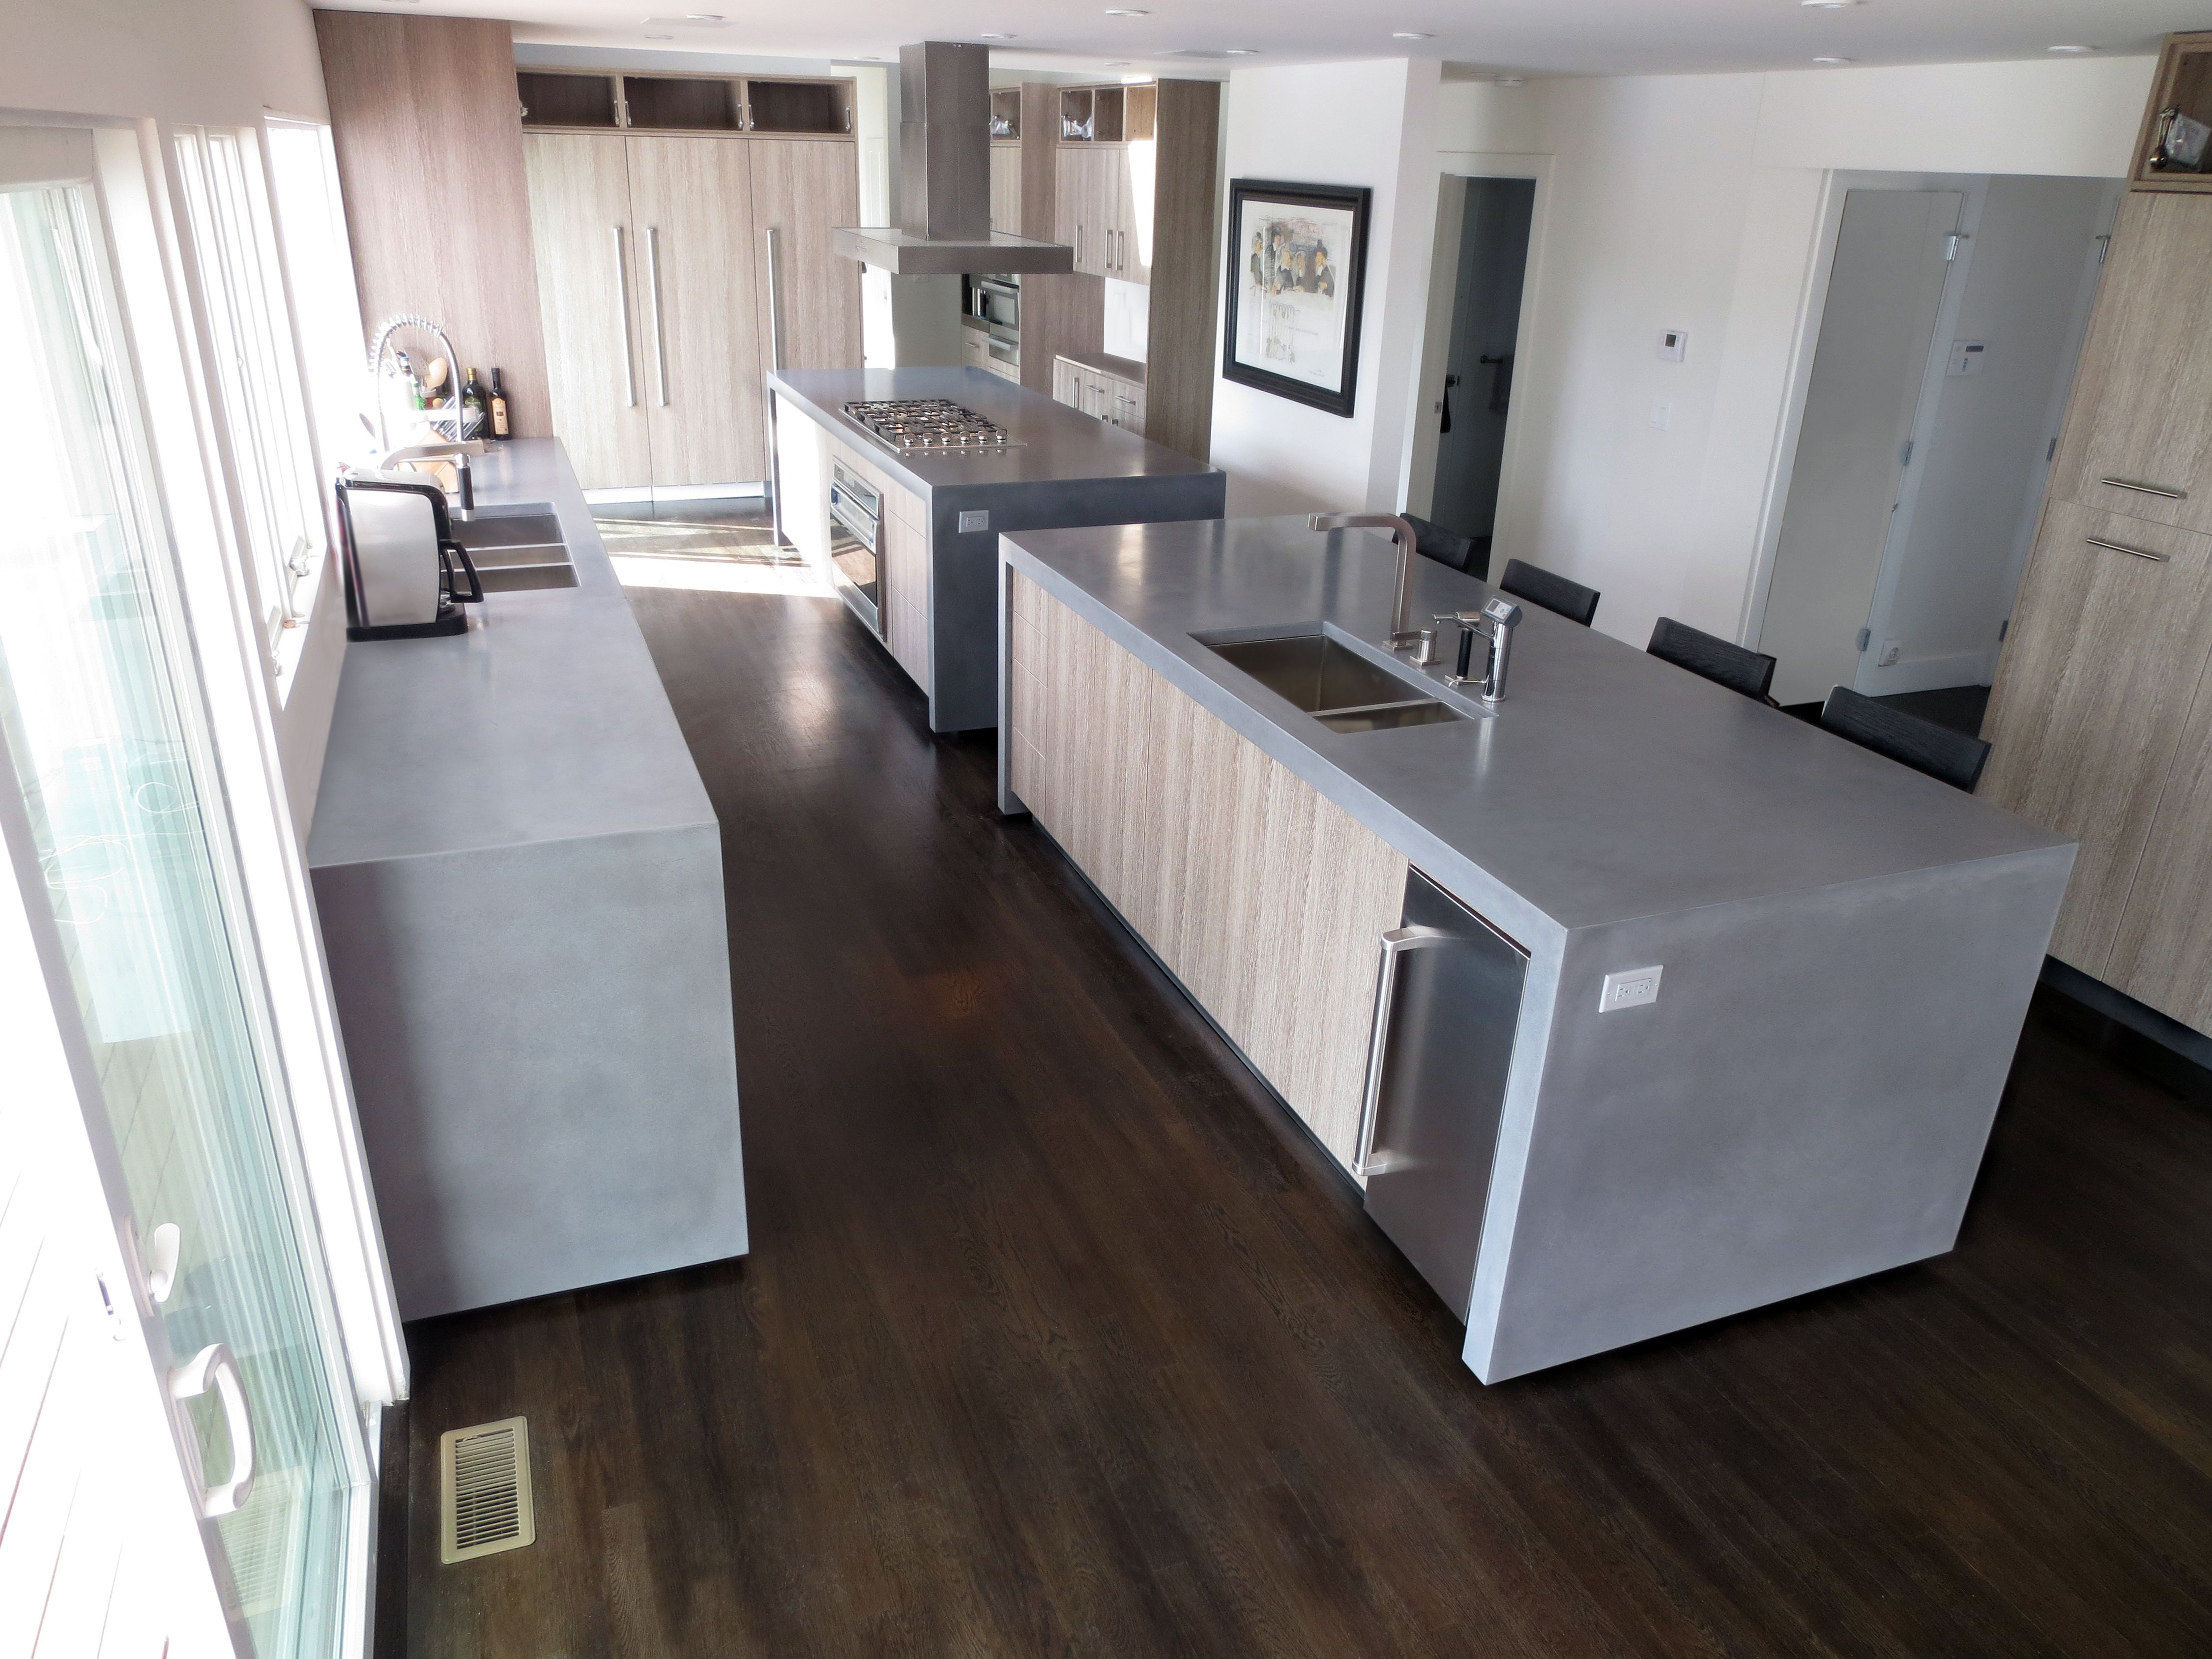 Concrete Island Kitchen Countertops With Double Waterfall Lags